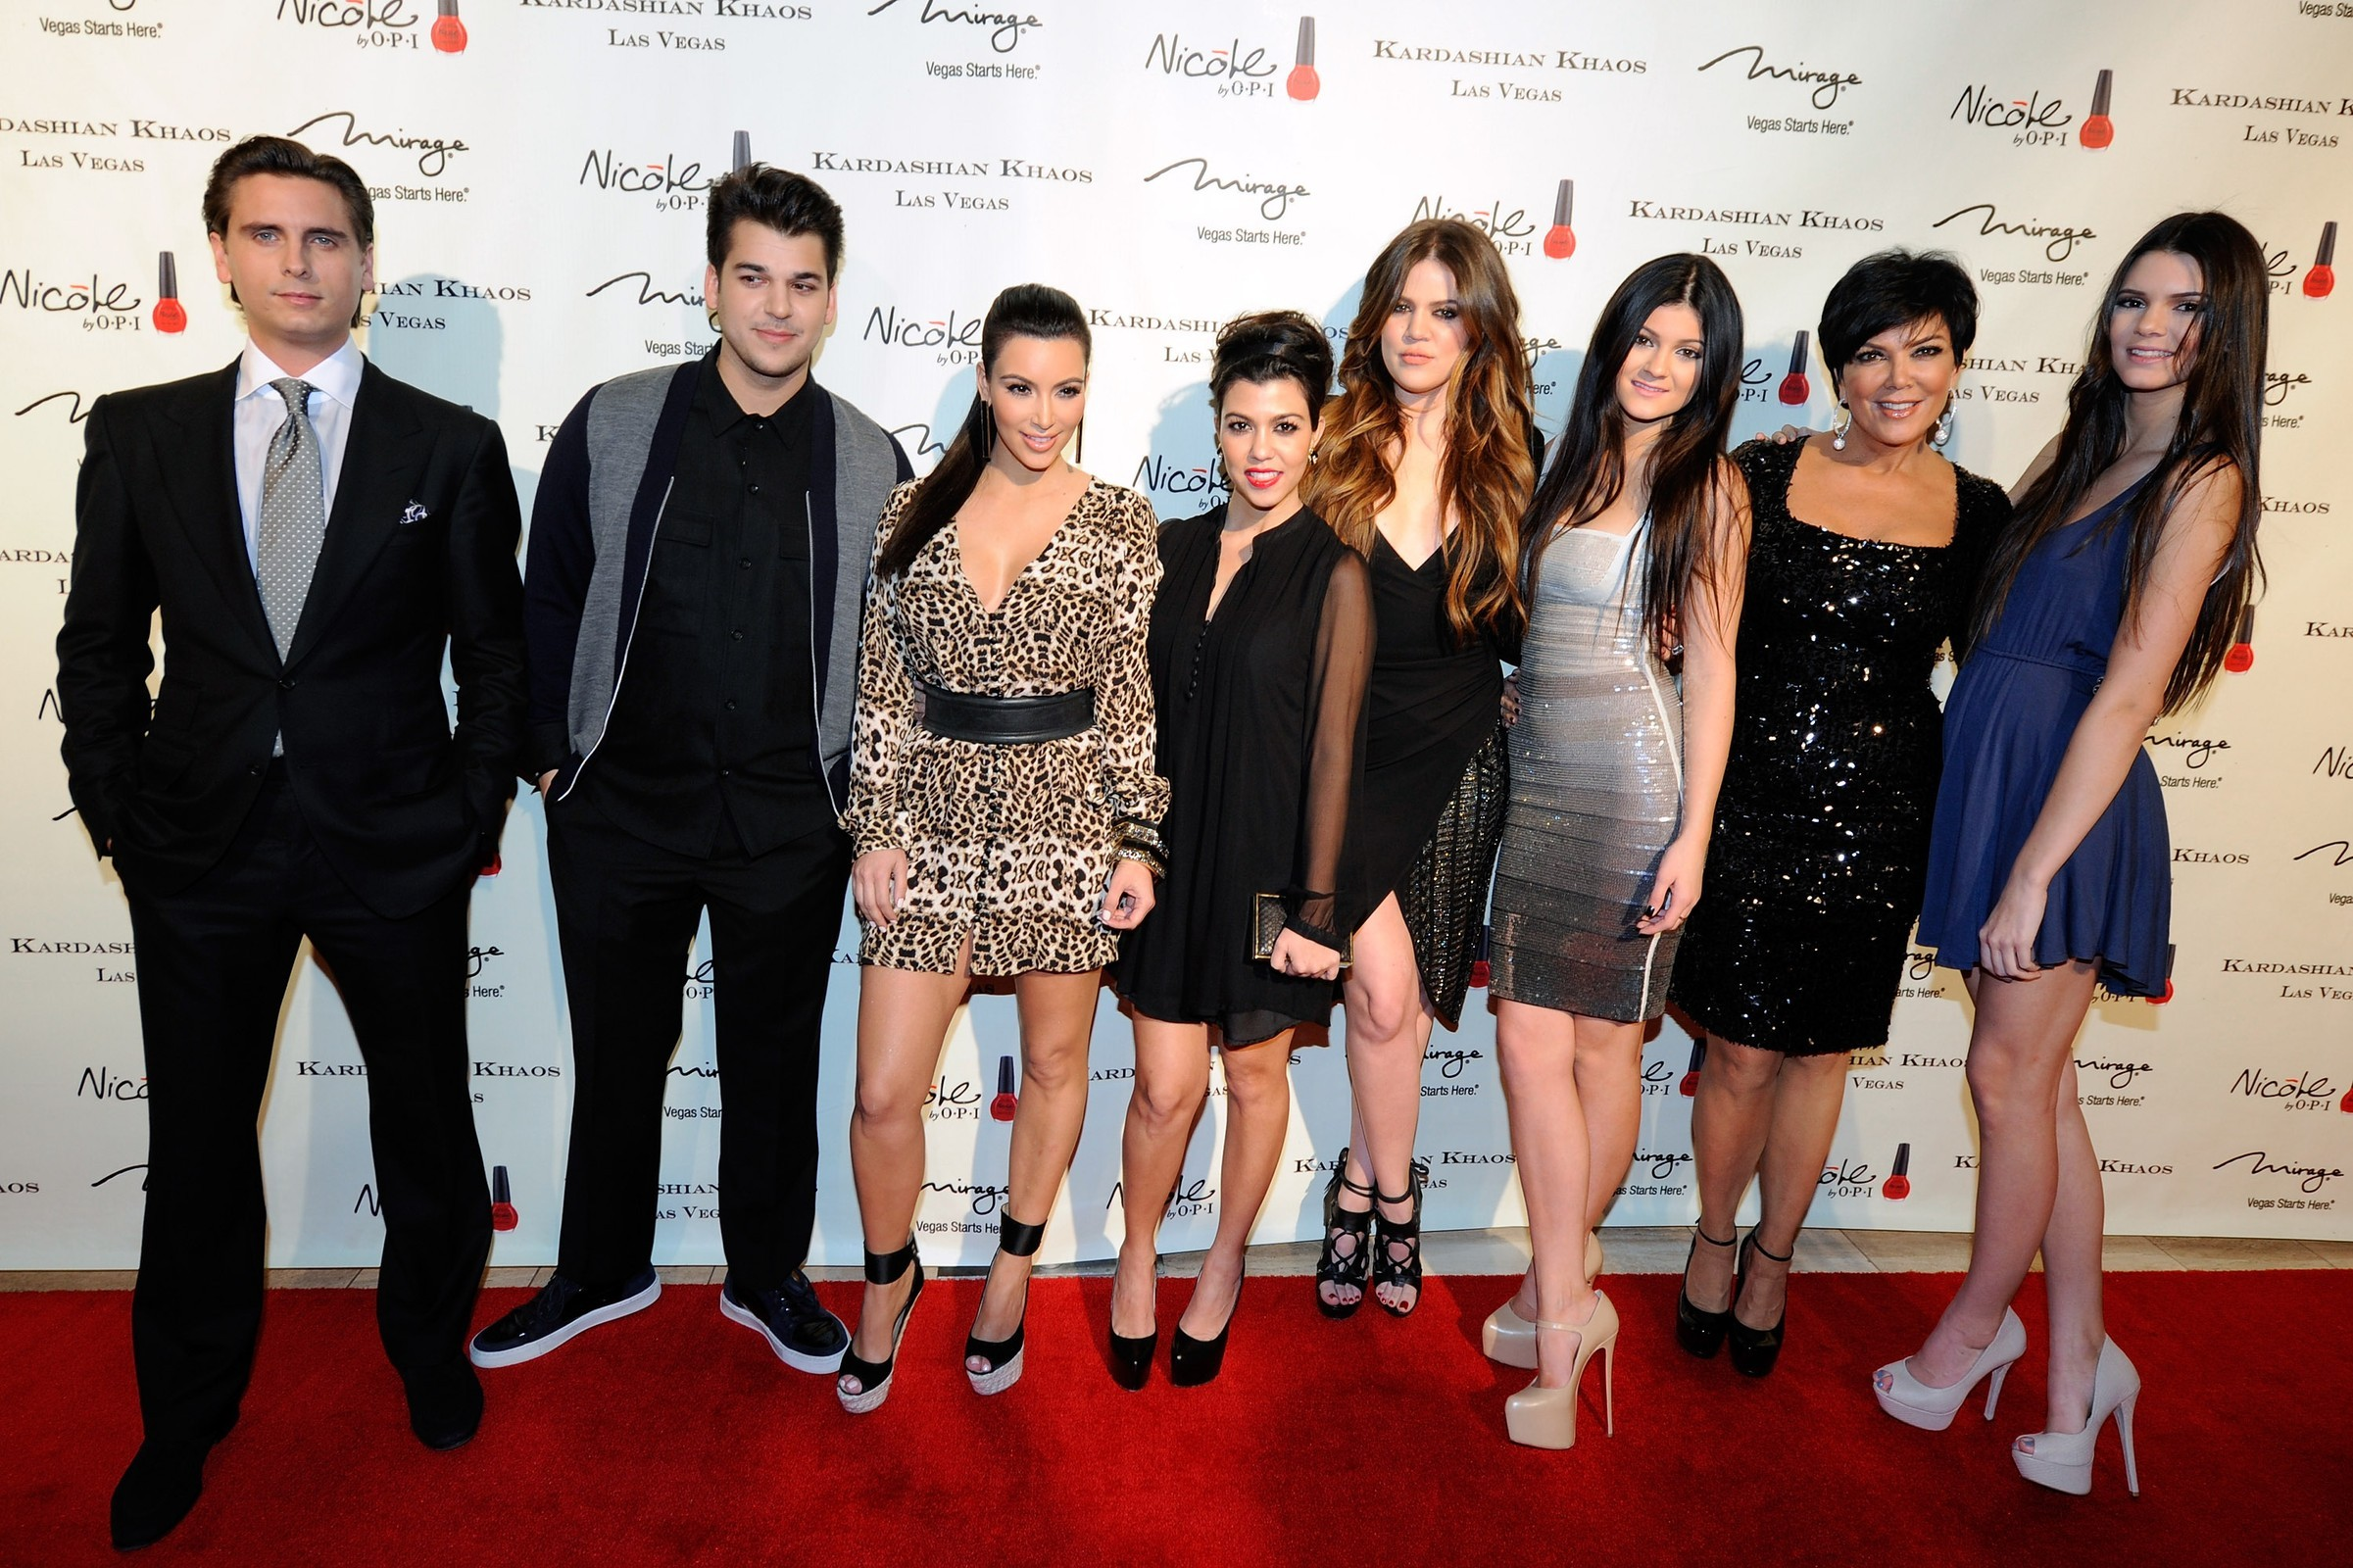 'Keeping Up With The Kardashians' Renewed For 3 More Seasons.  Suicides up 80%.